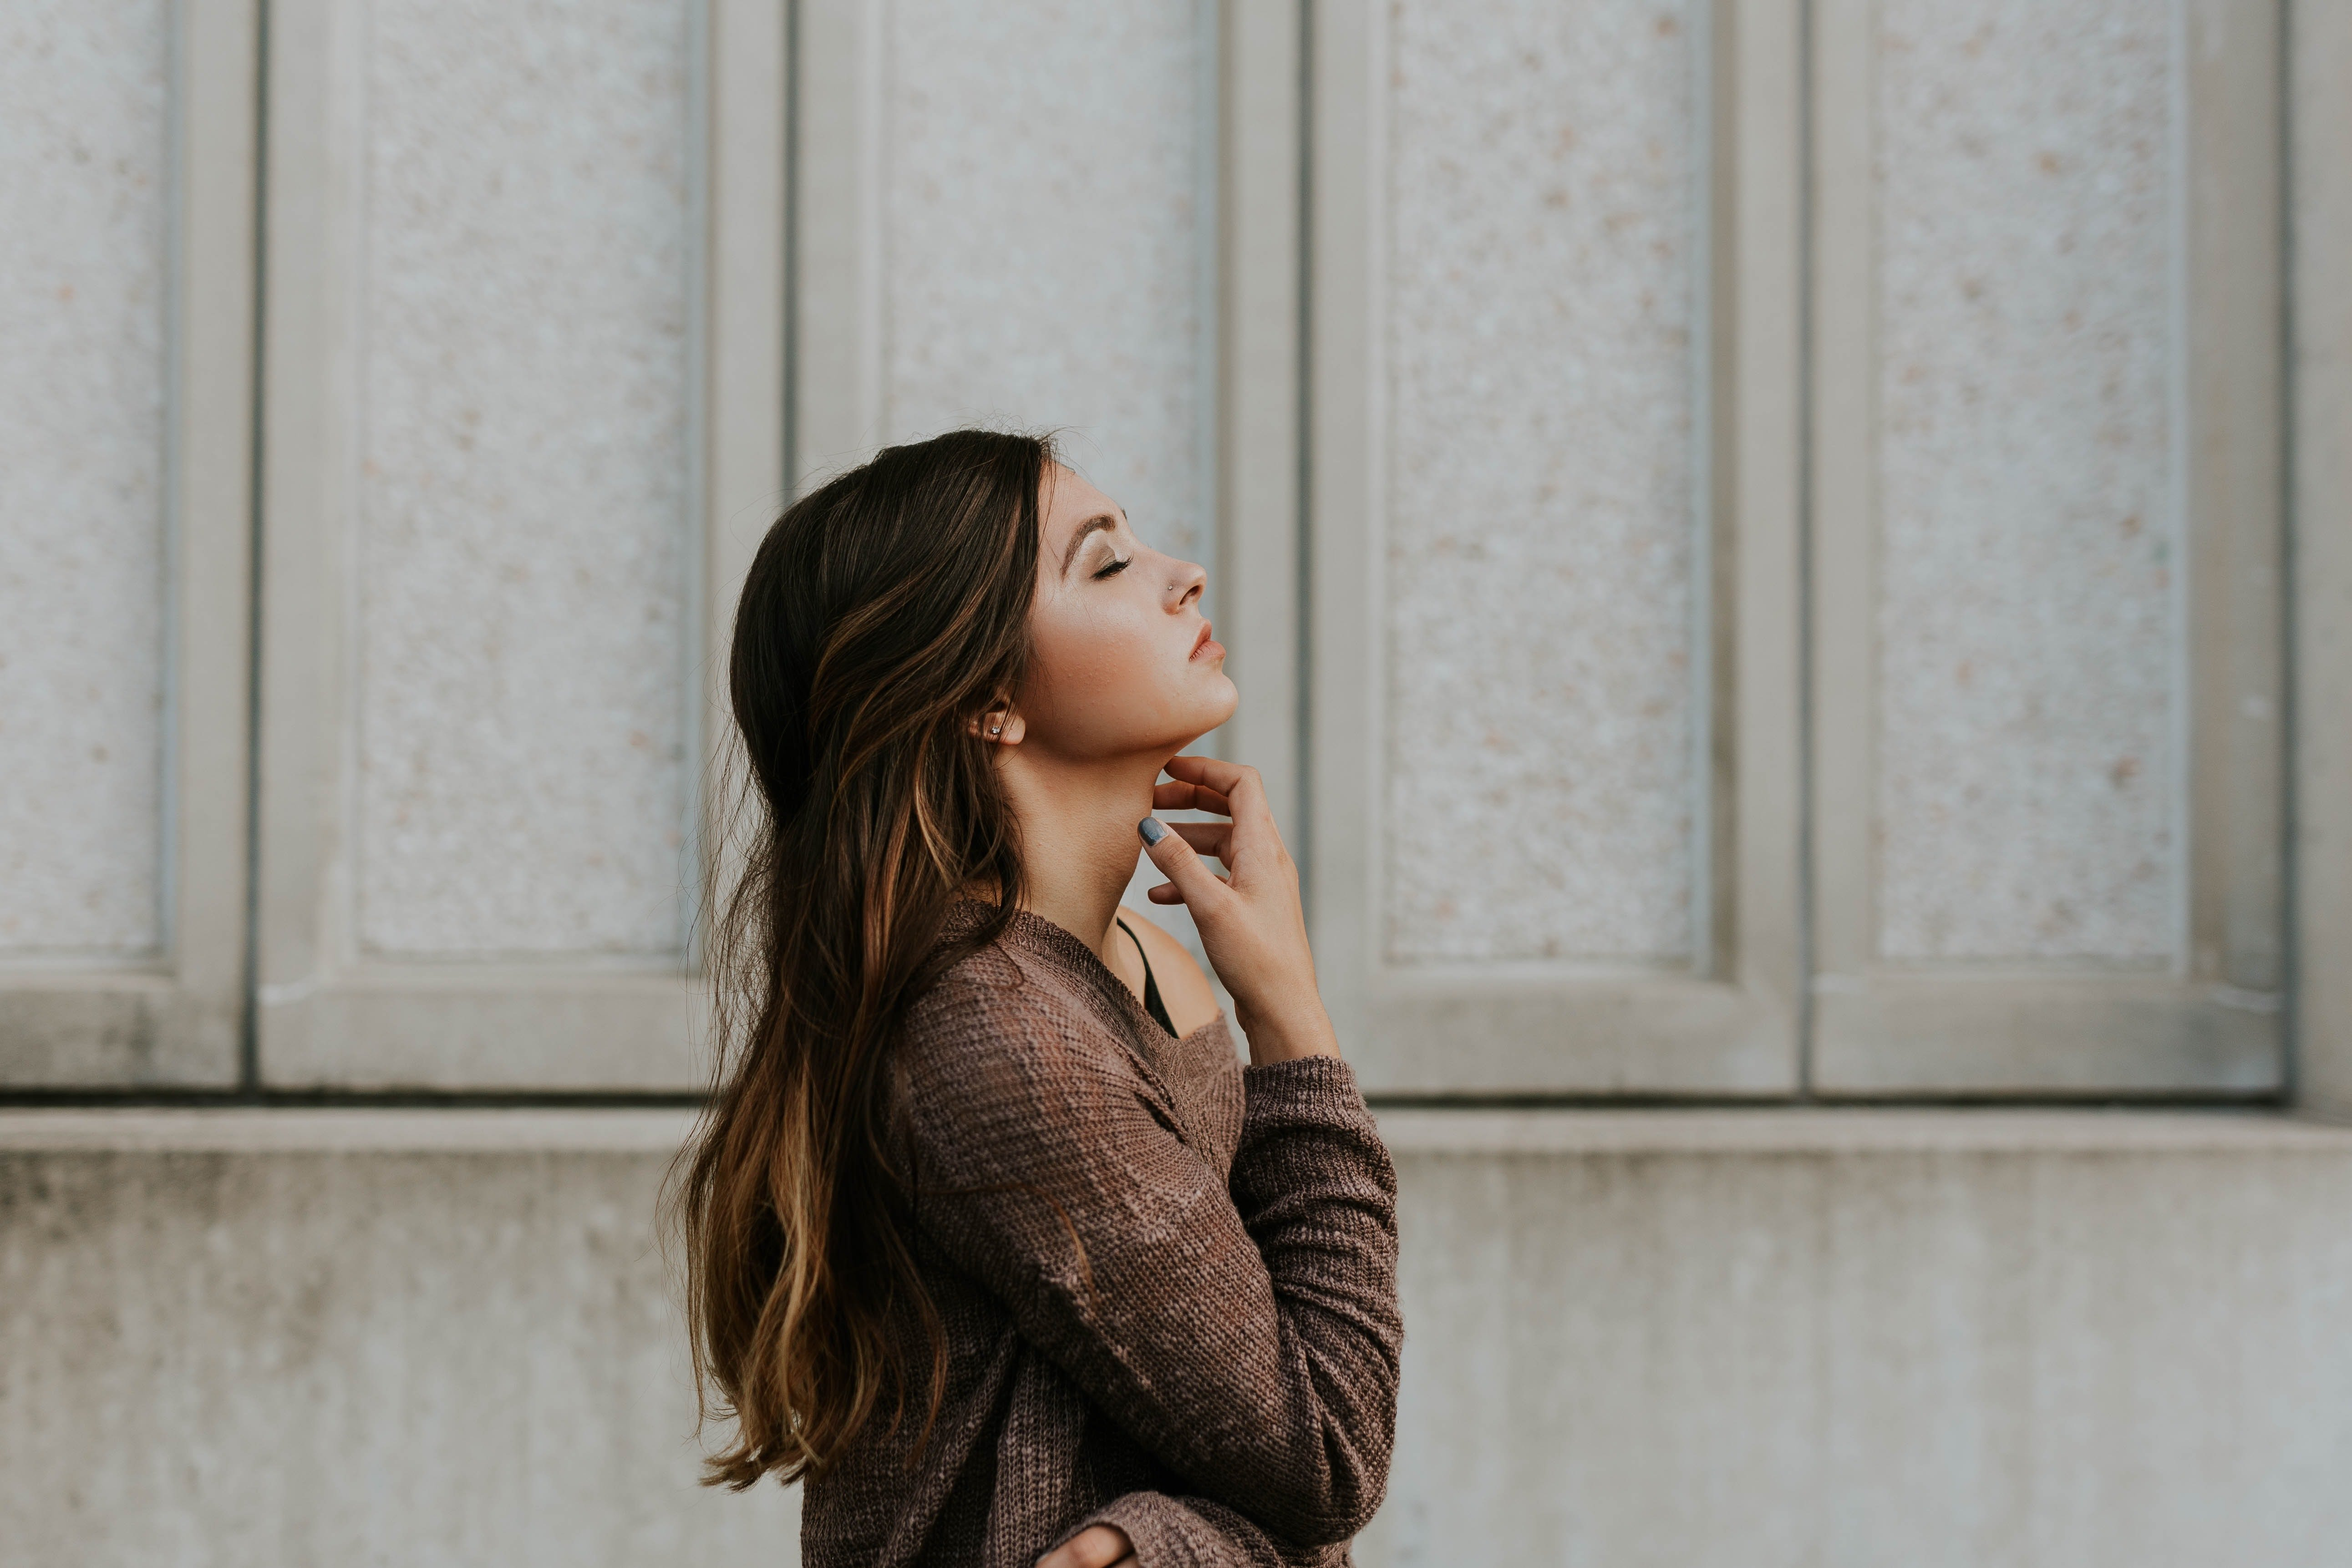 What's The Hype About With Juvéderm, Botox, And Kybella?